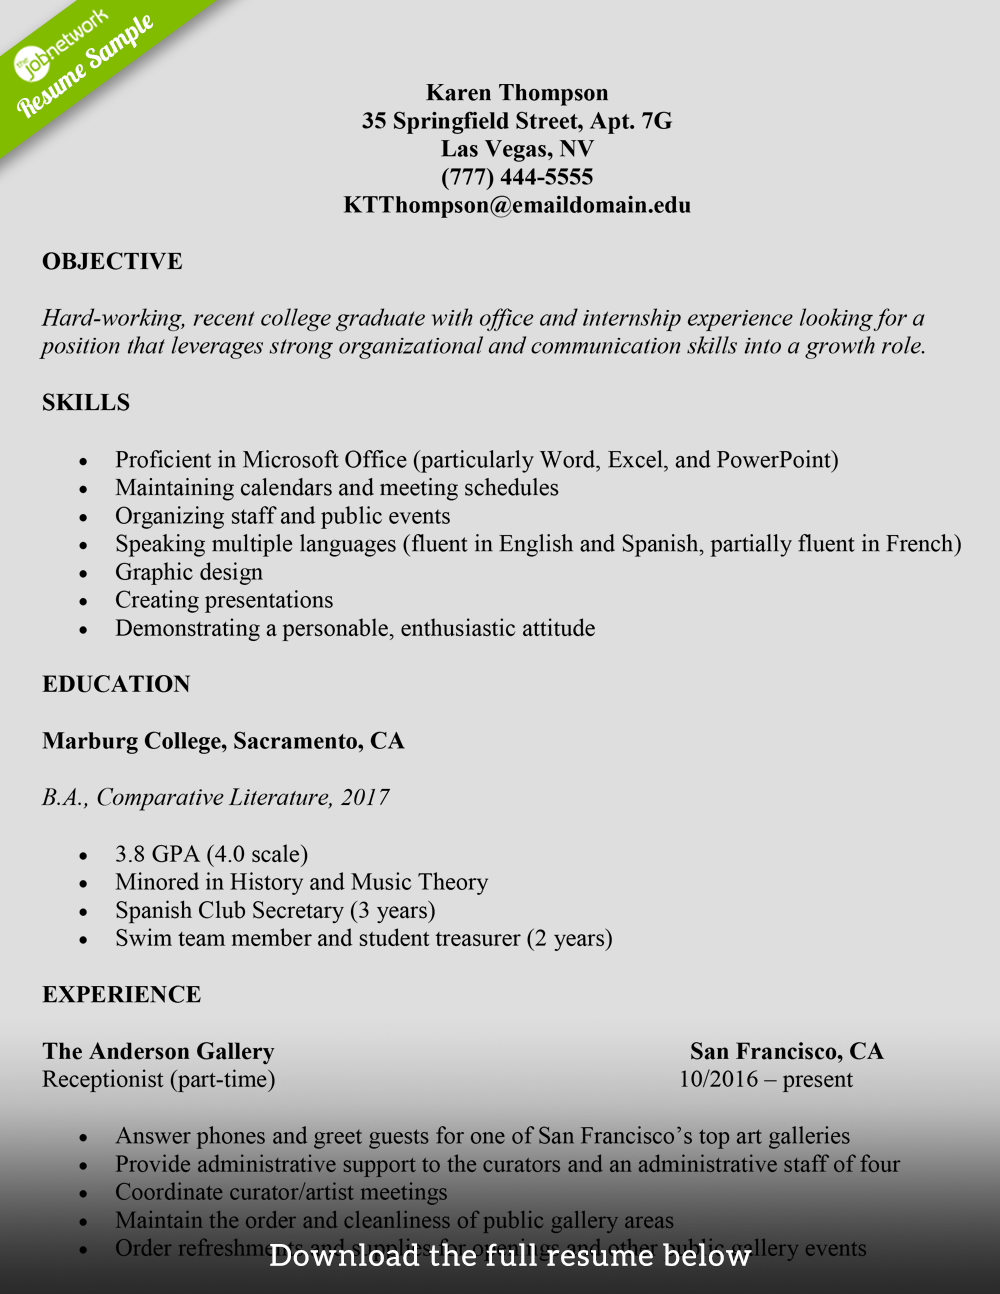 How to write a college student resume (with examples)